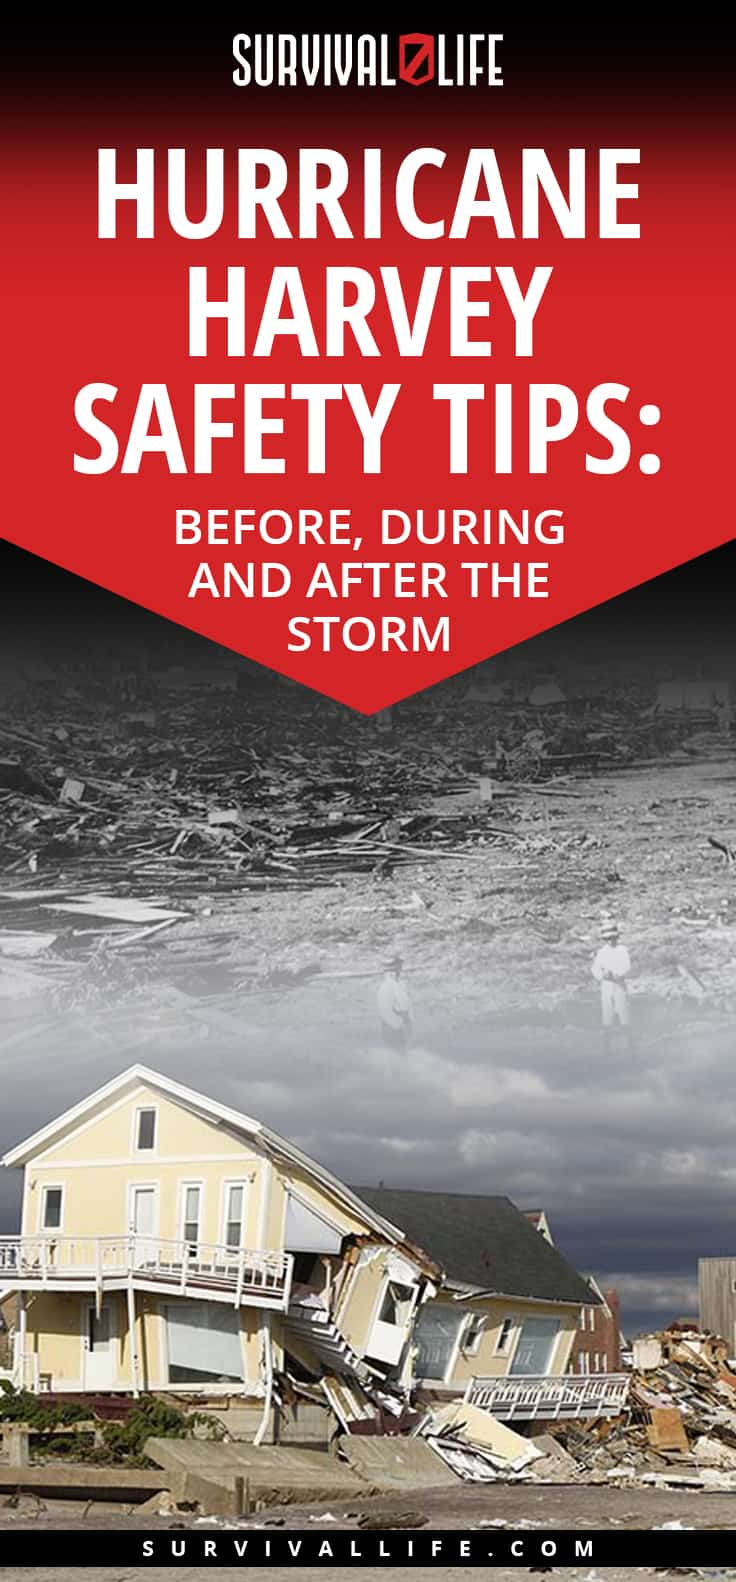 Hurricane Harvey Safety Tips: Before, During and After the Storm